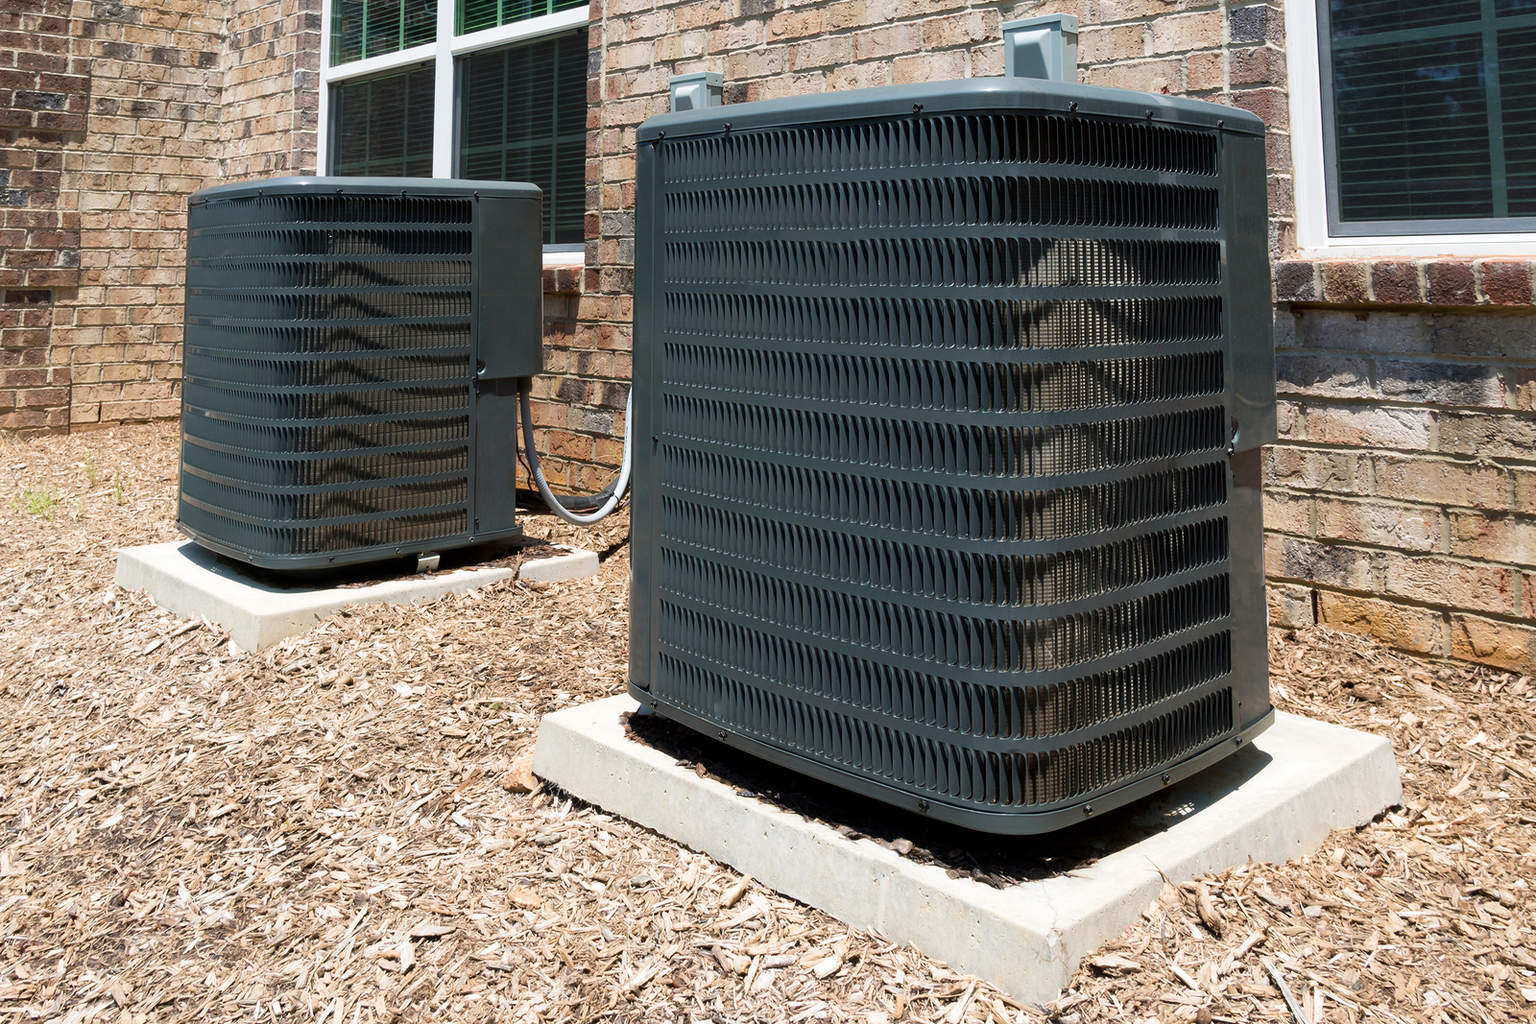 Mold Growth And How It Can Grow From An Aging Hvac Unit